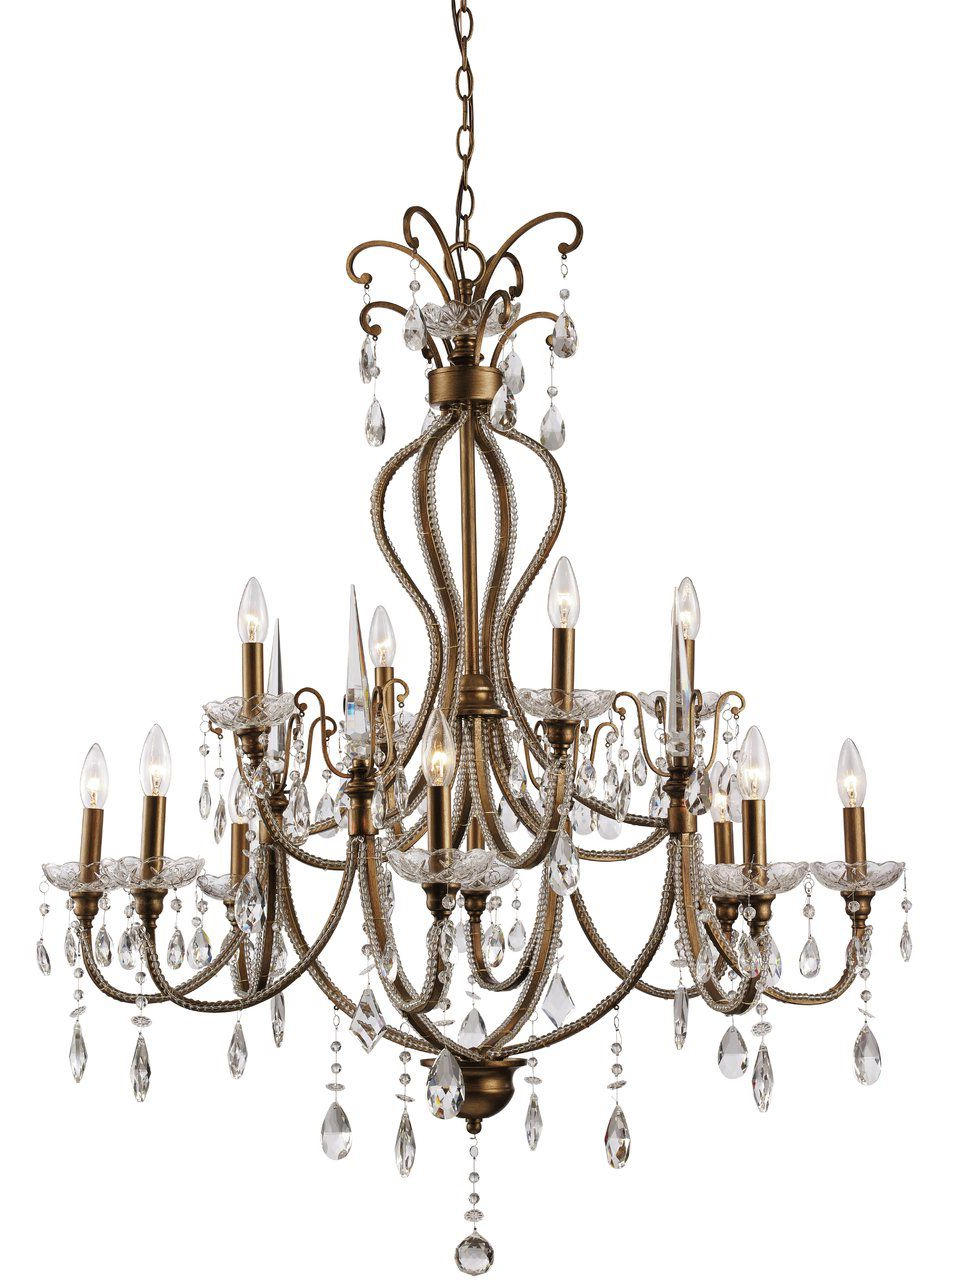 Blandford 12 Light Candle Style Chandelier (View 12 of 25)